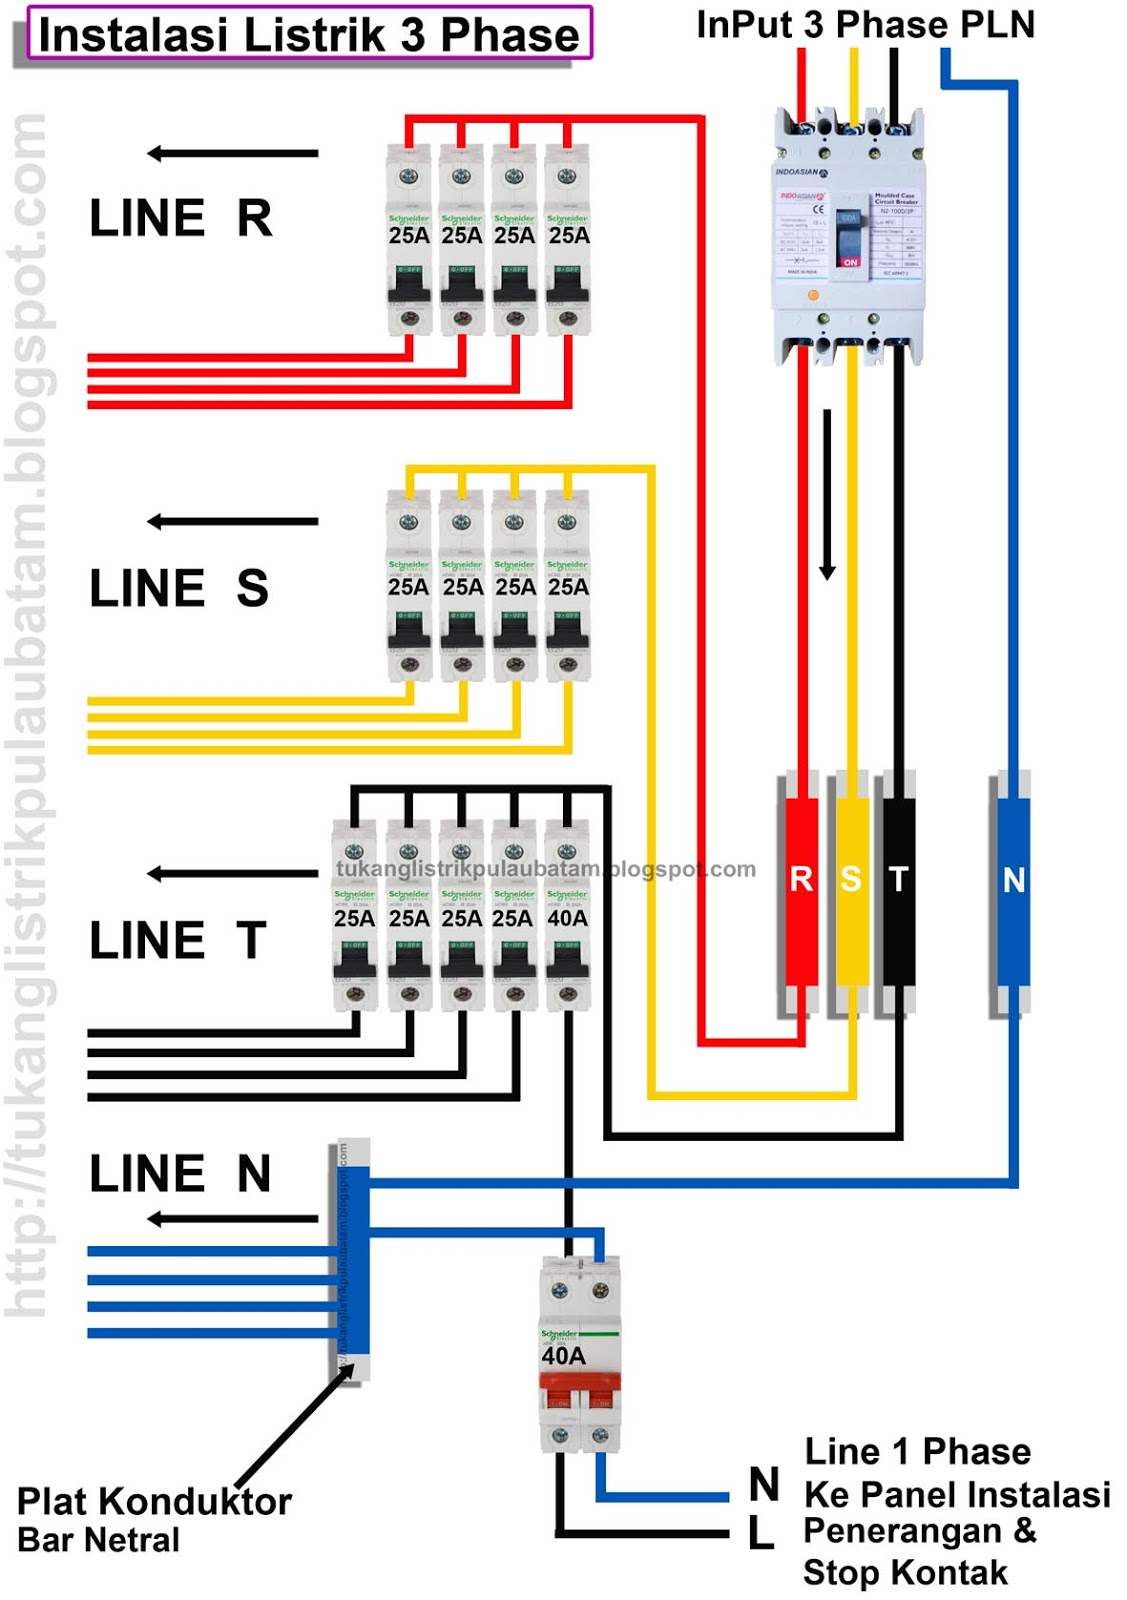 Amp Meter Ct Wiring Diagram Content Resource Of Db 3 Phase Fuse Box Electrical Connection Milbank Socket Furnace Transformer